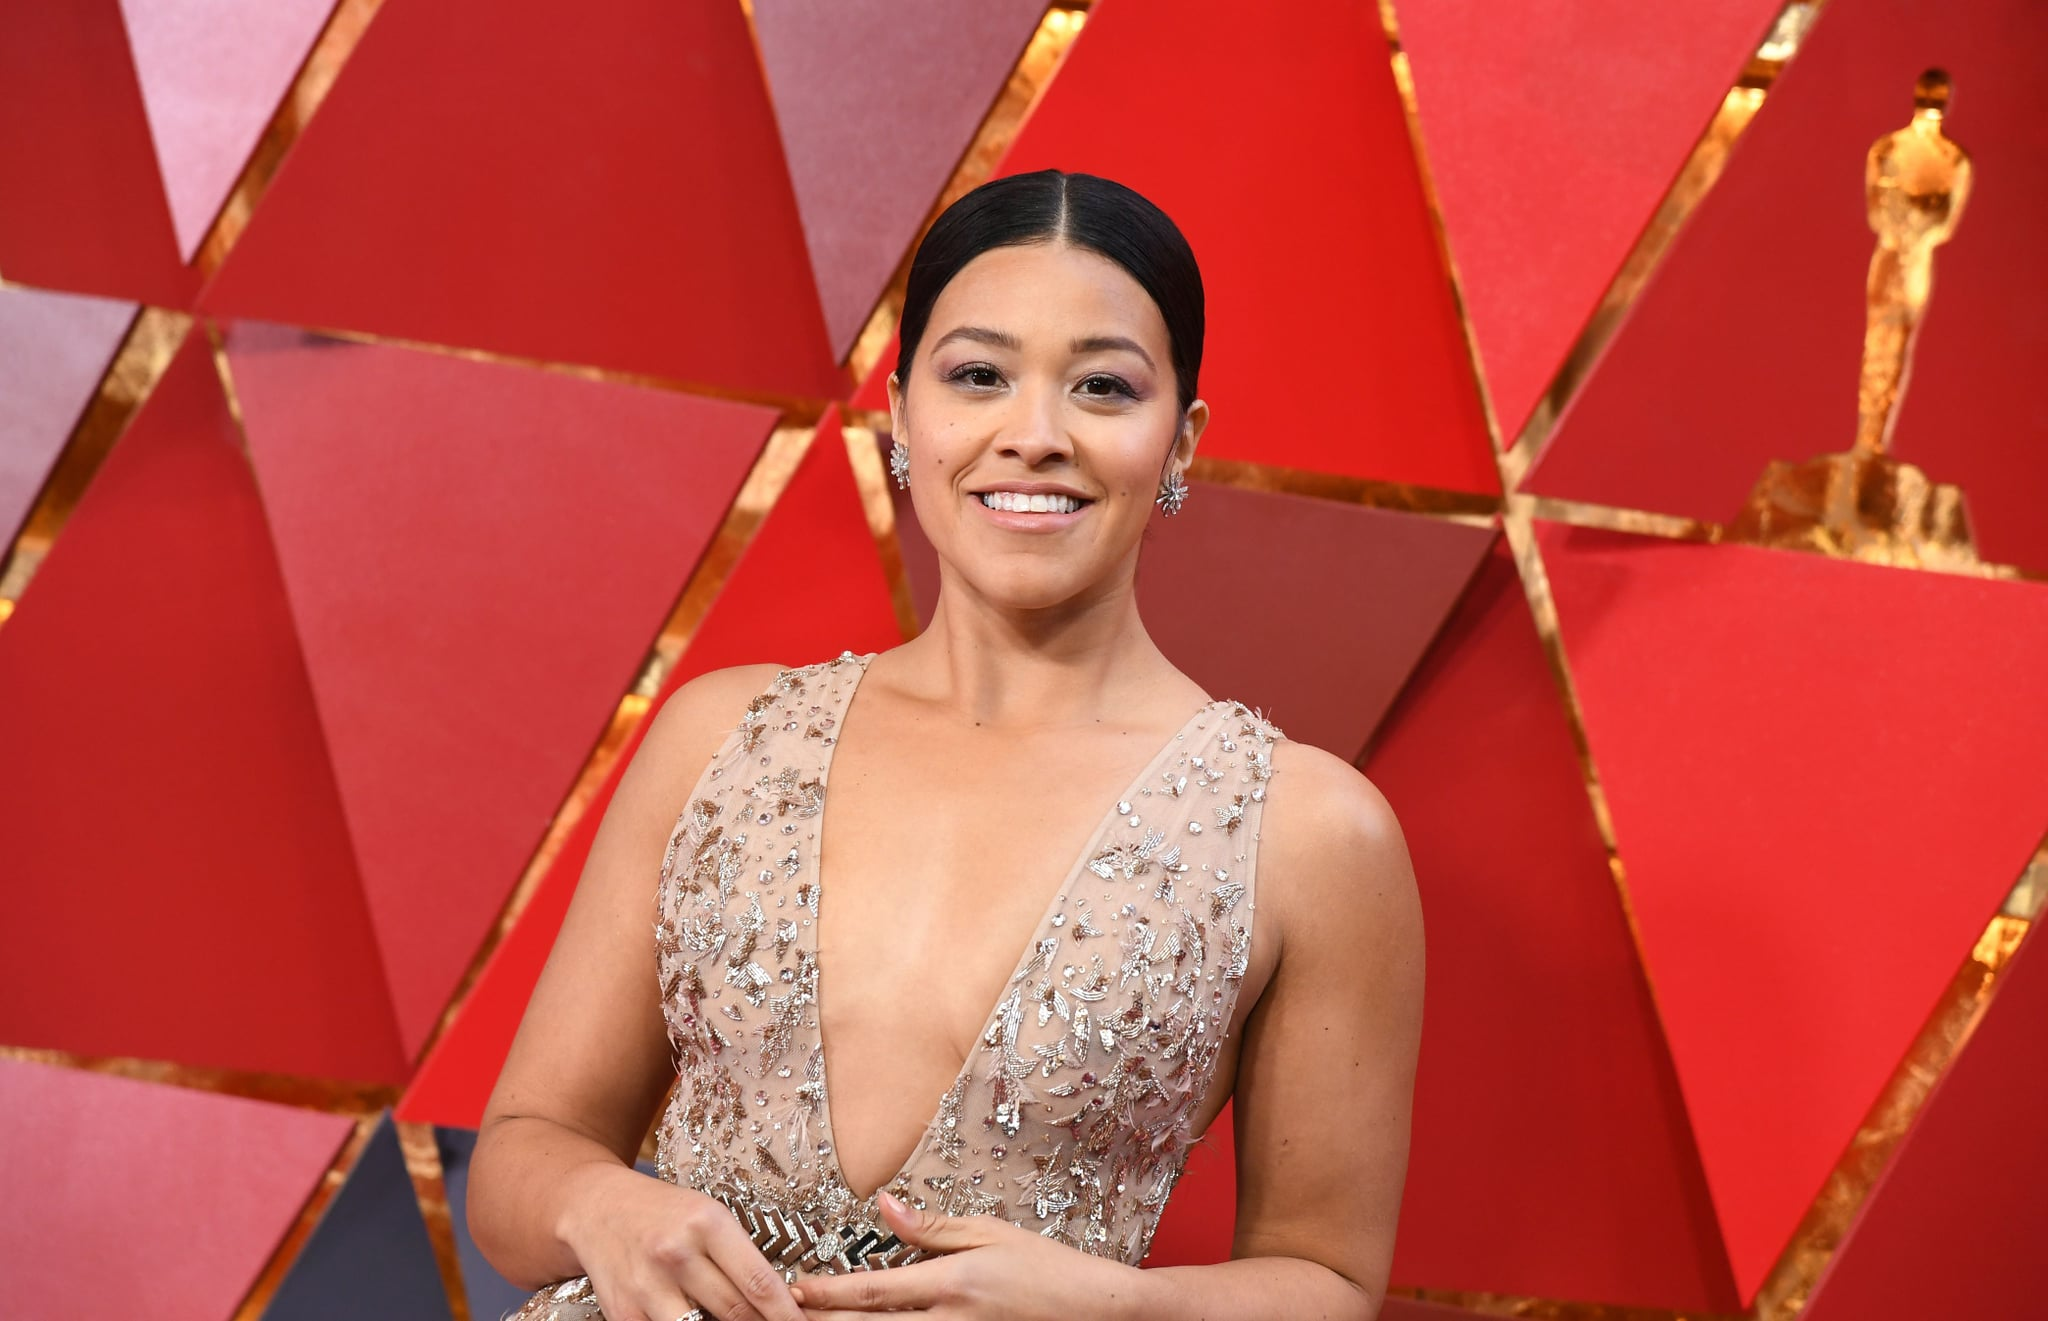 US actress Gina Rodriguez arrives for the 90th Annual Academy Awards on March 4, 2018, in Hollywood, California.  / AFP PHOTO / ANGELA WEISS        (Photo credit should read ANGELA WEISS/AFP/Getty Images)